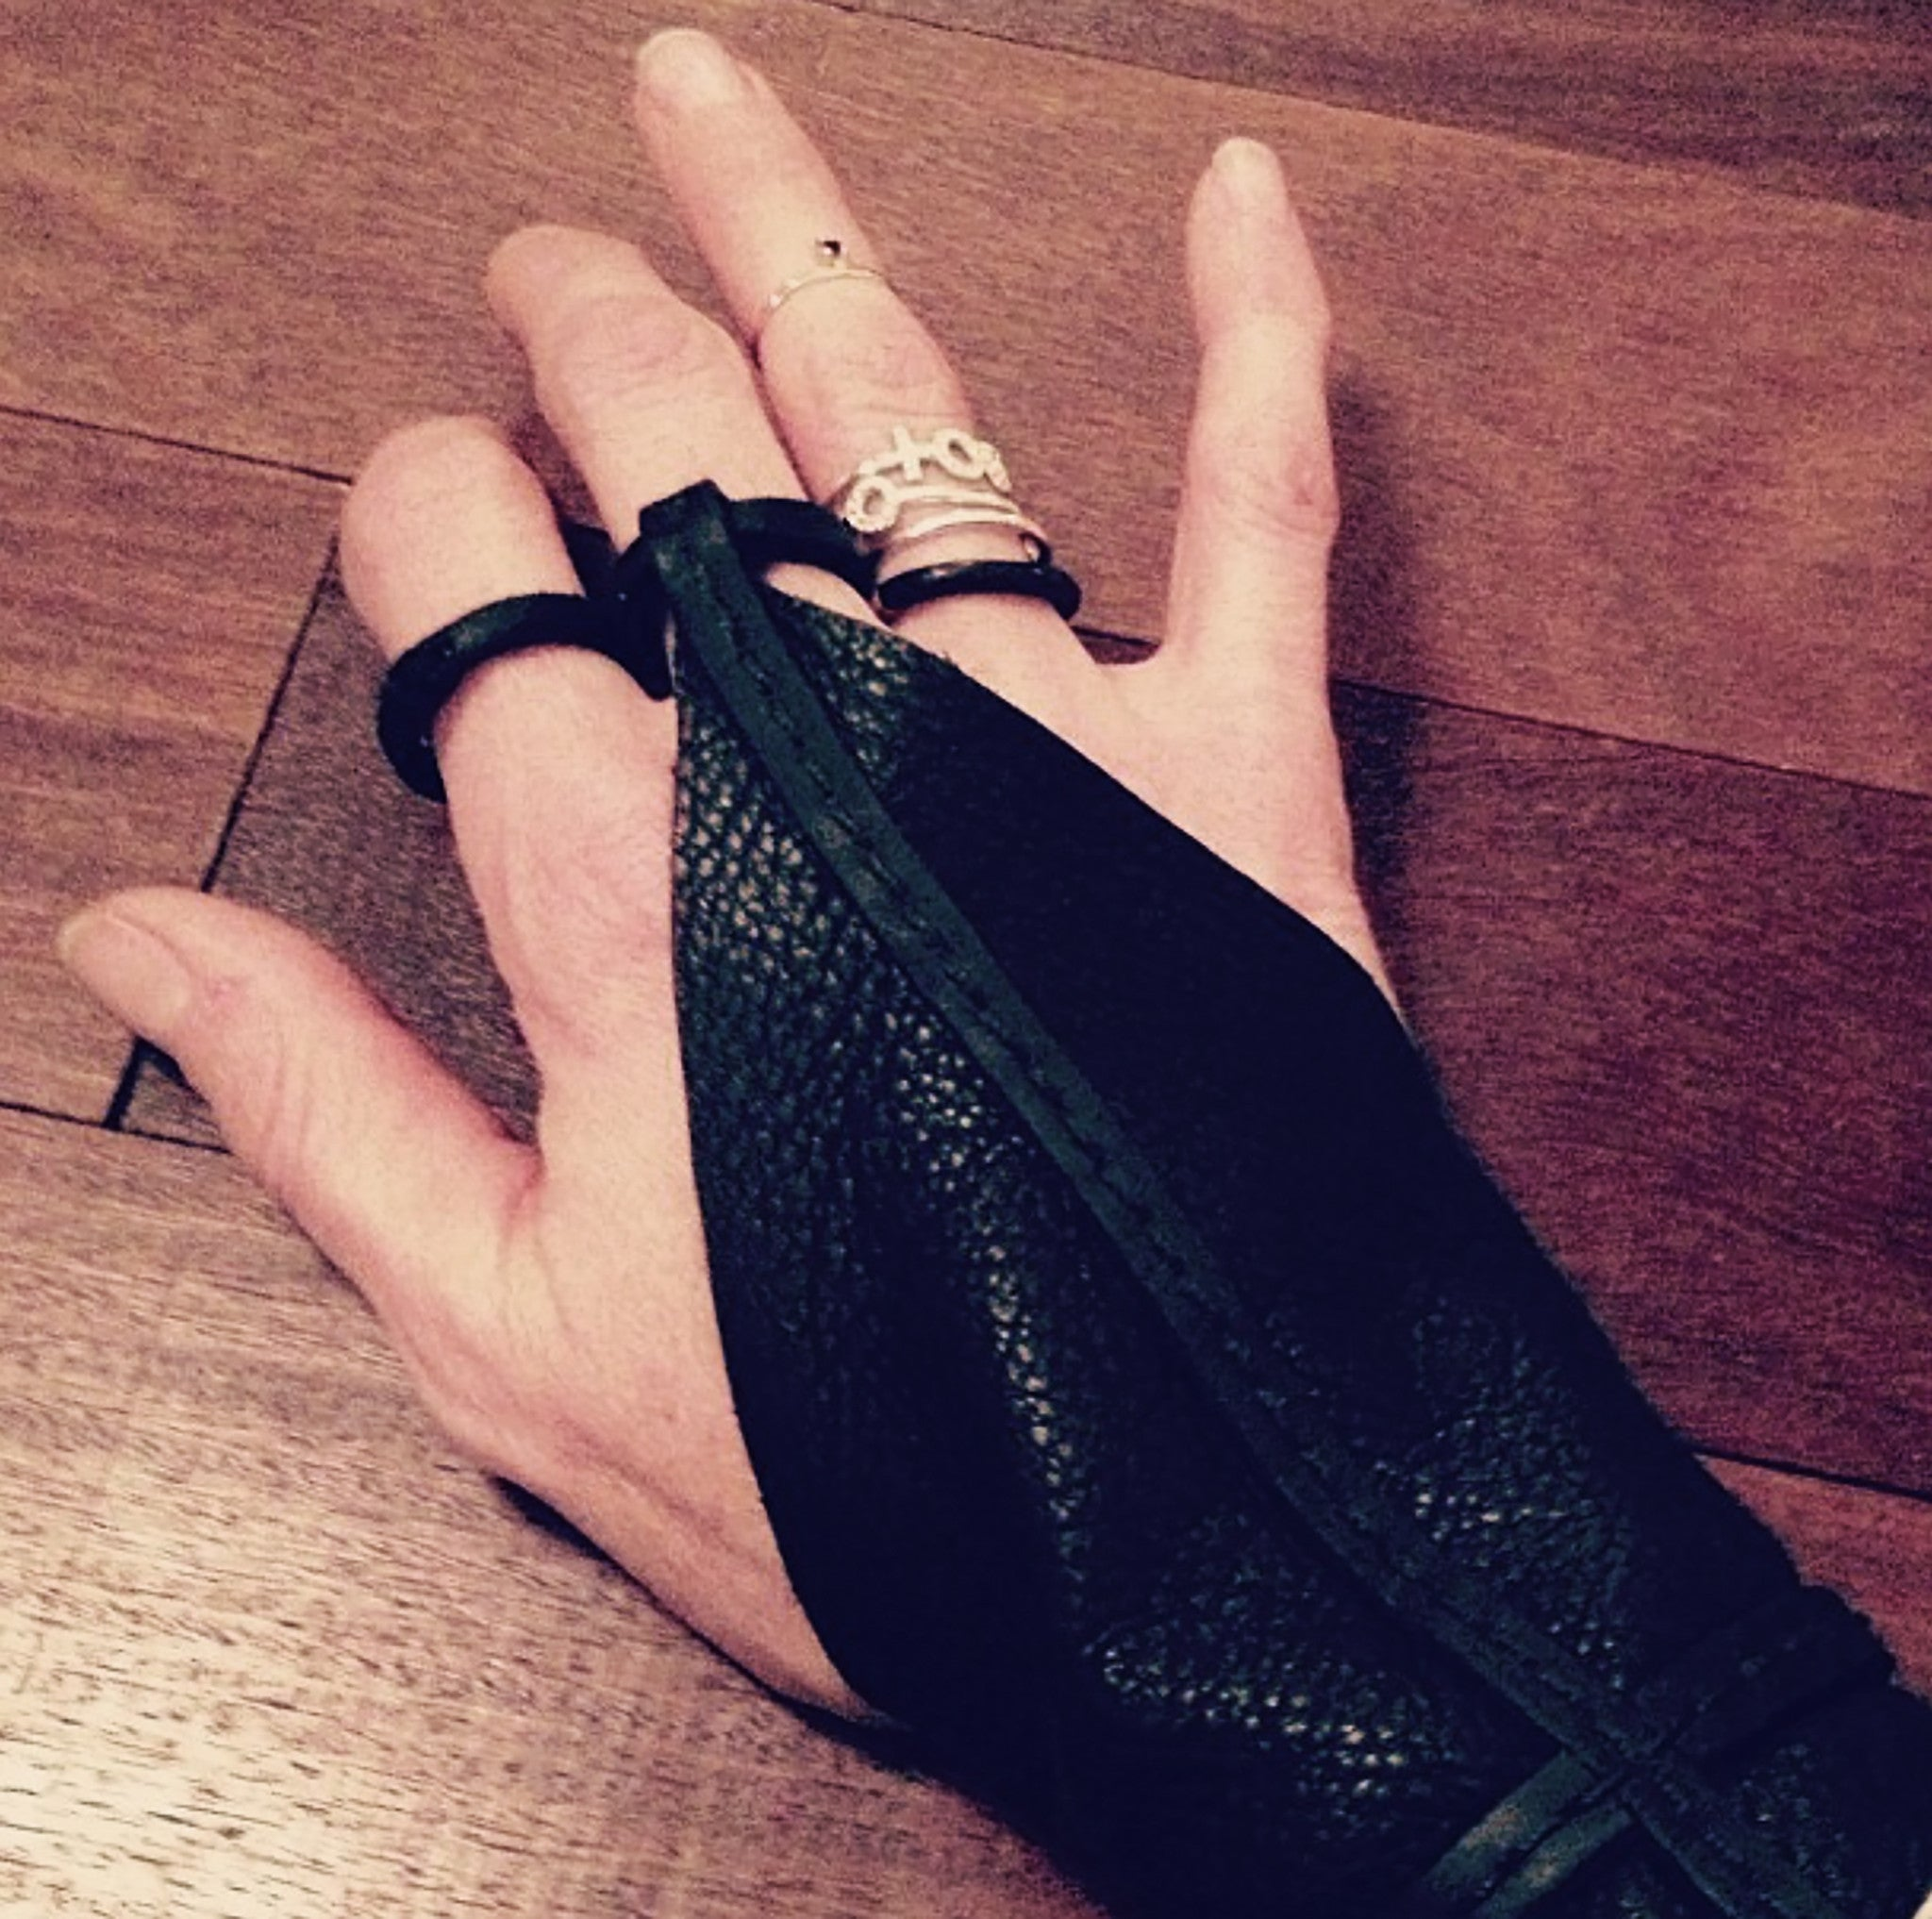 Single Finger Cross Leather Gloves Wendy Nichol Designer Handmade in NYC New York City black Leather Fingerless Smoker Driving Gloves Archery Archer Witch Vampire Dracula Glove Gloves